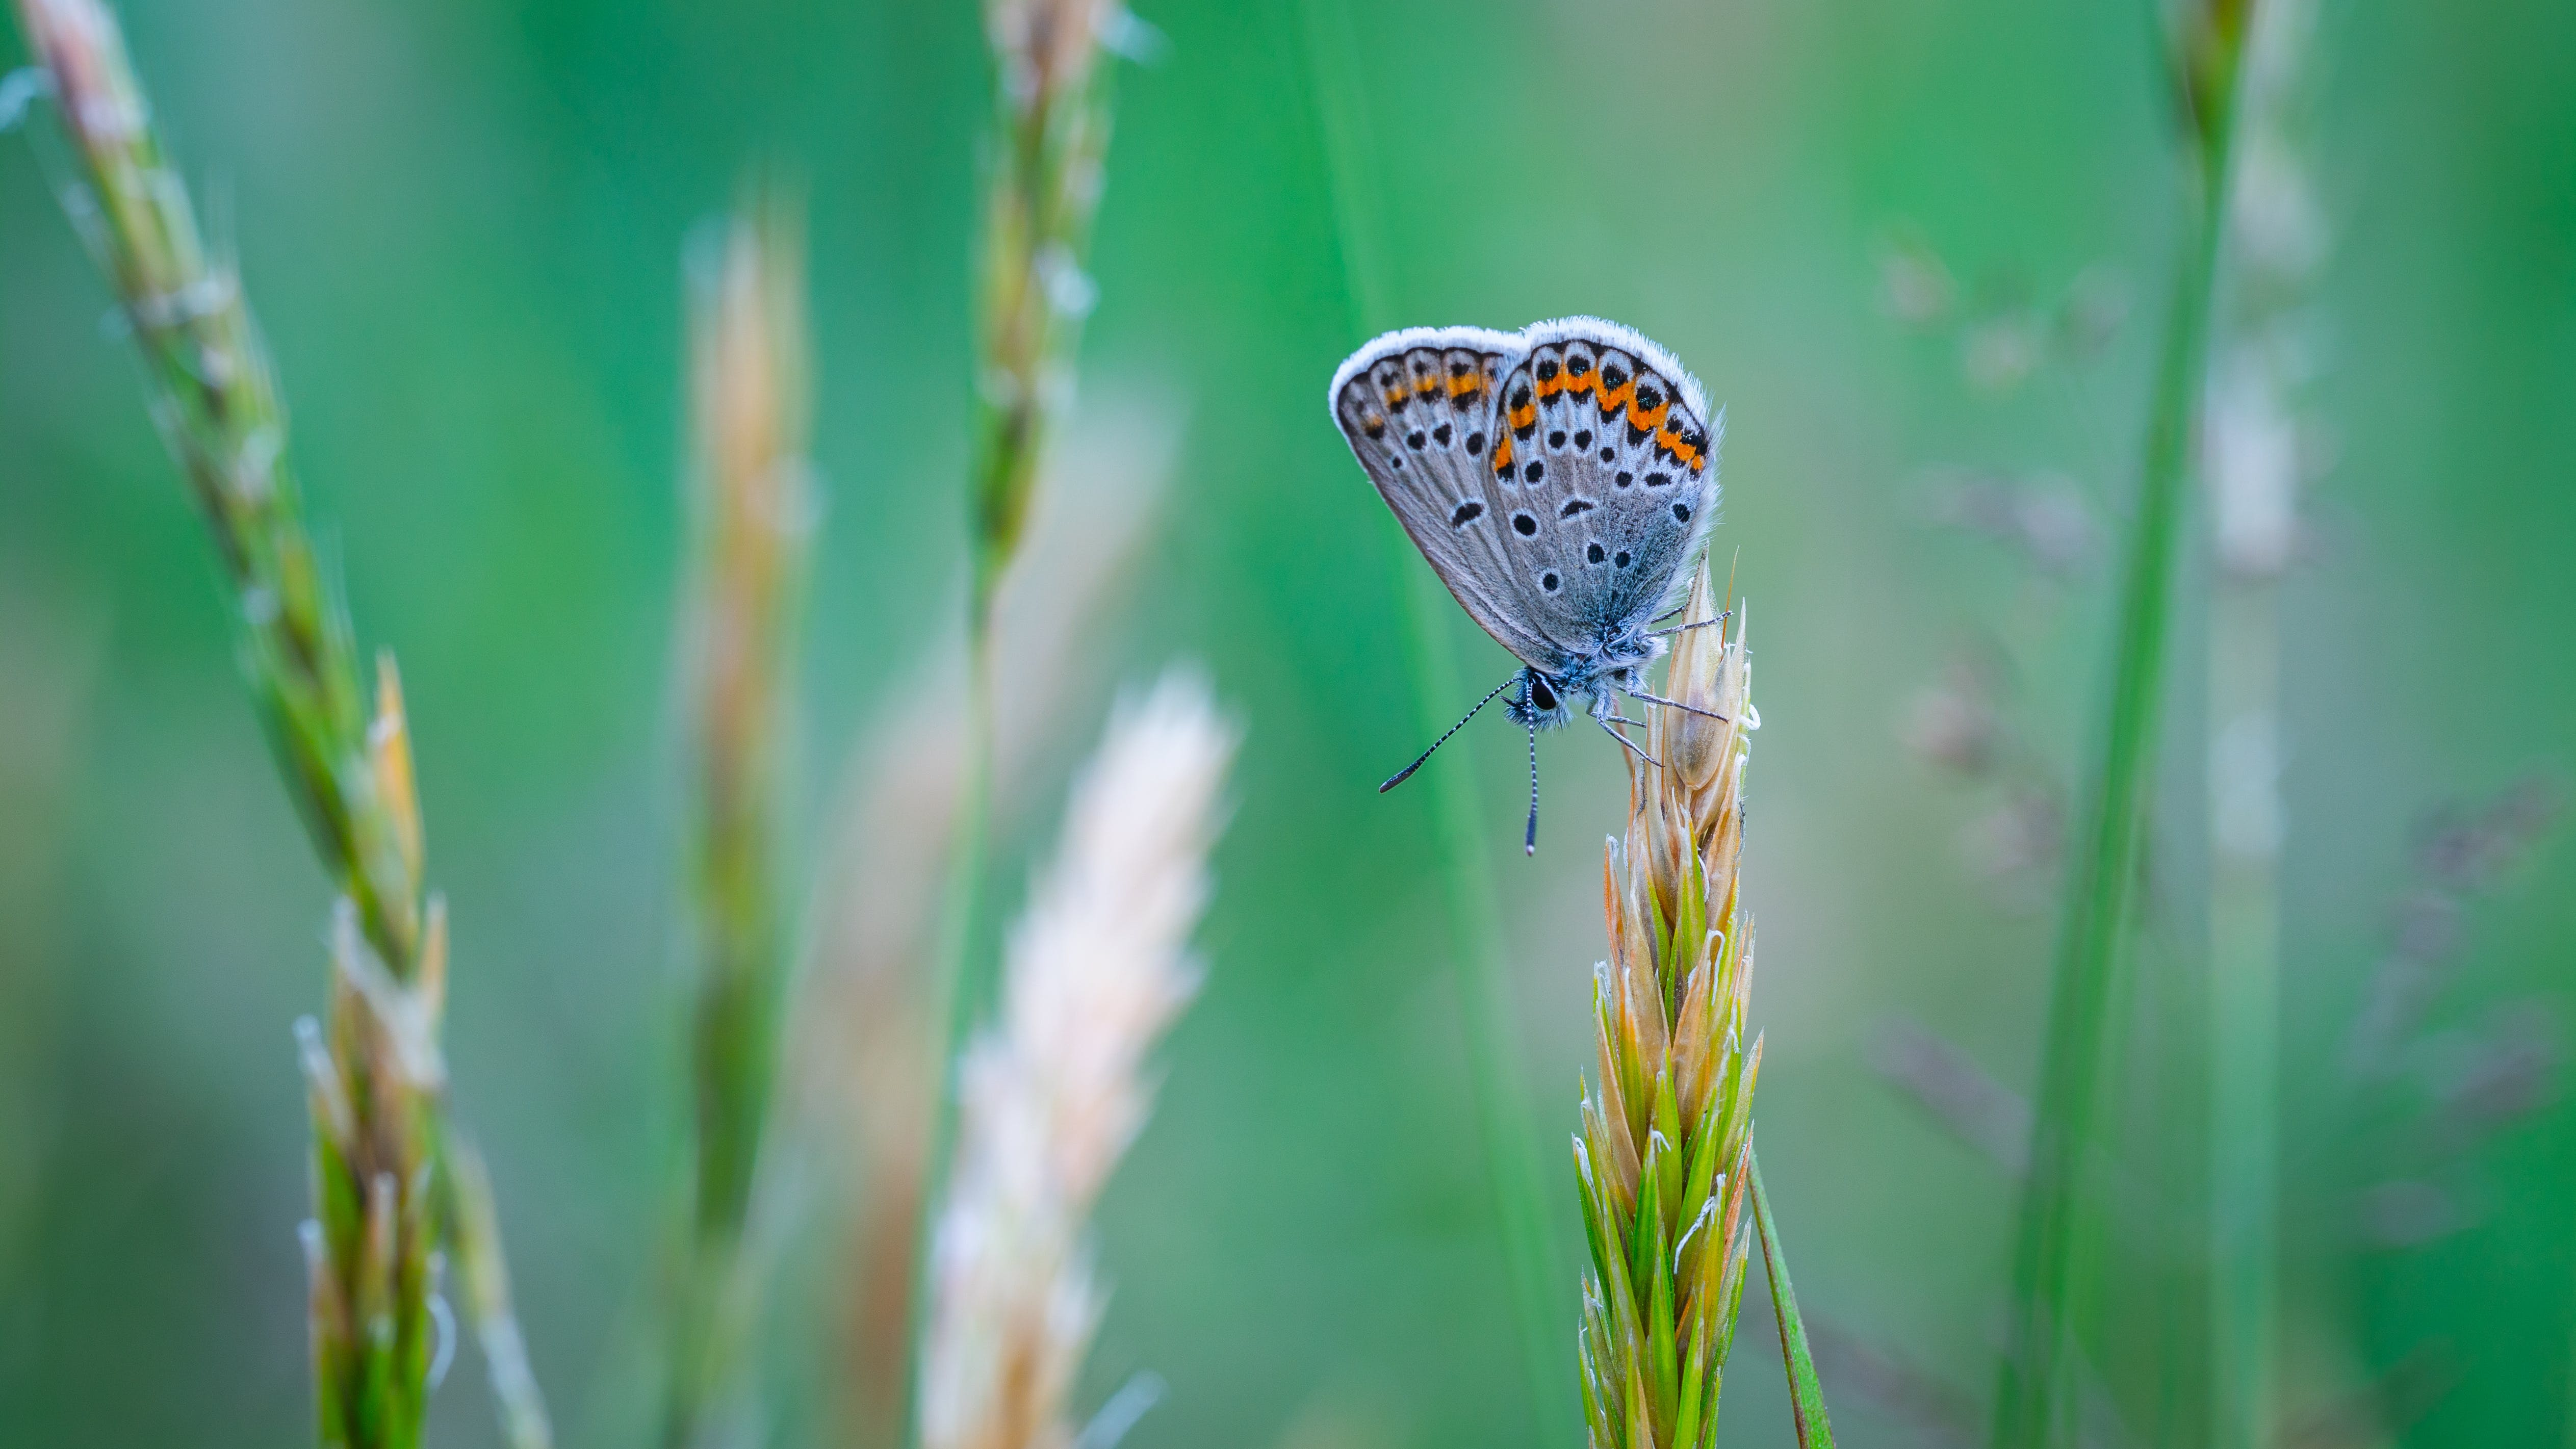 Common Blue Butterfly Perched On Grass Close-up Photo